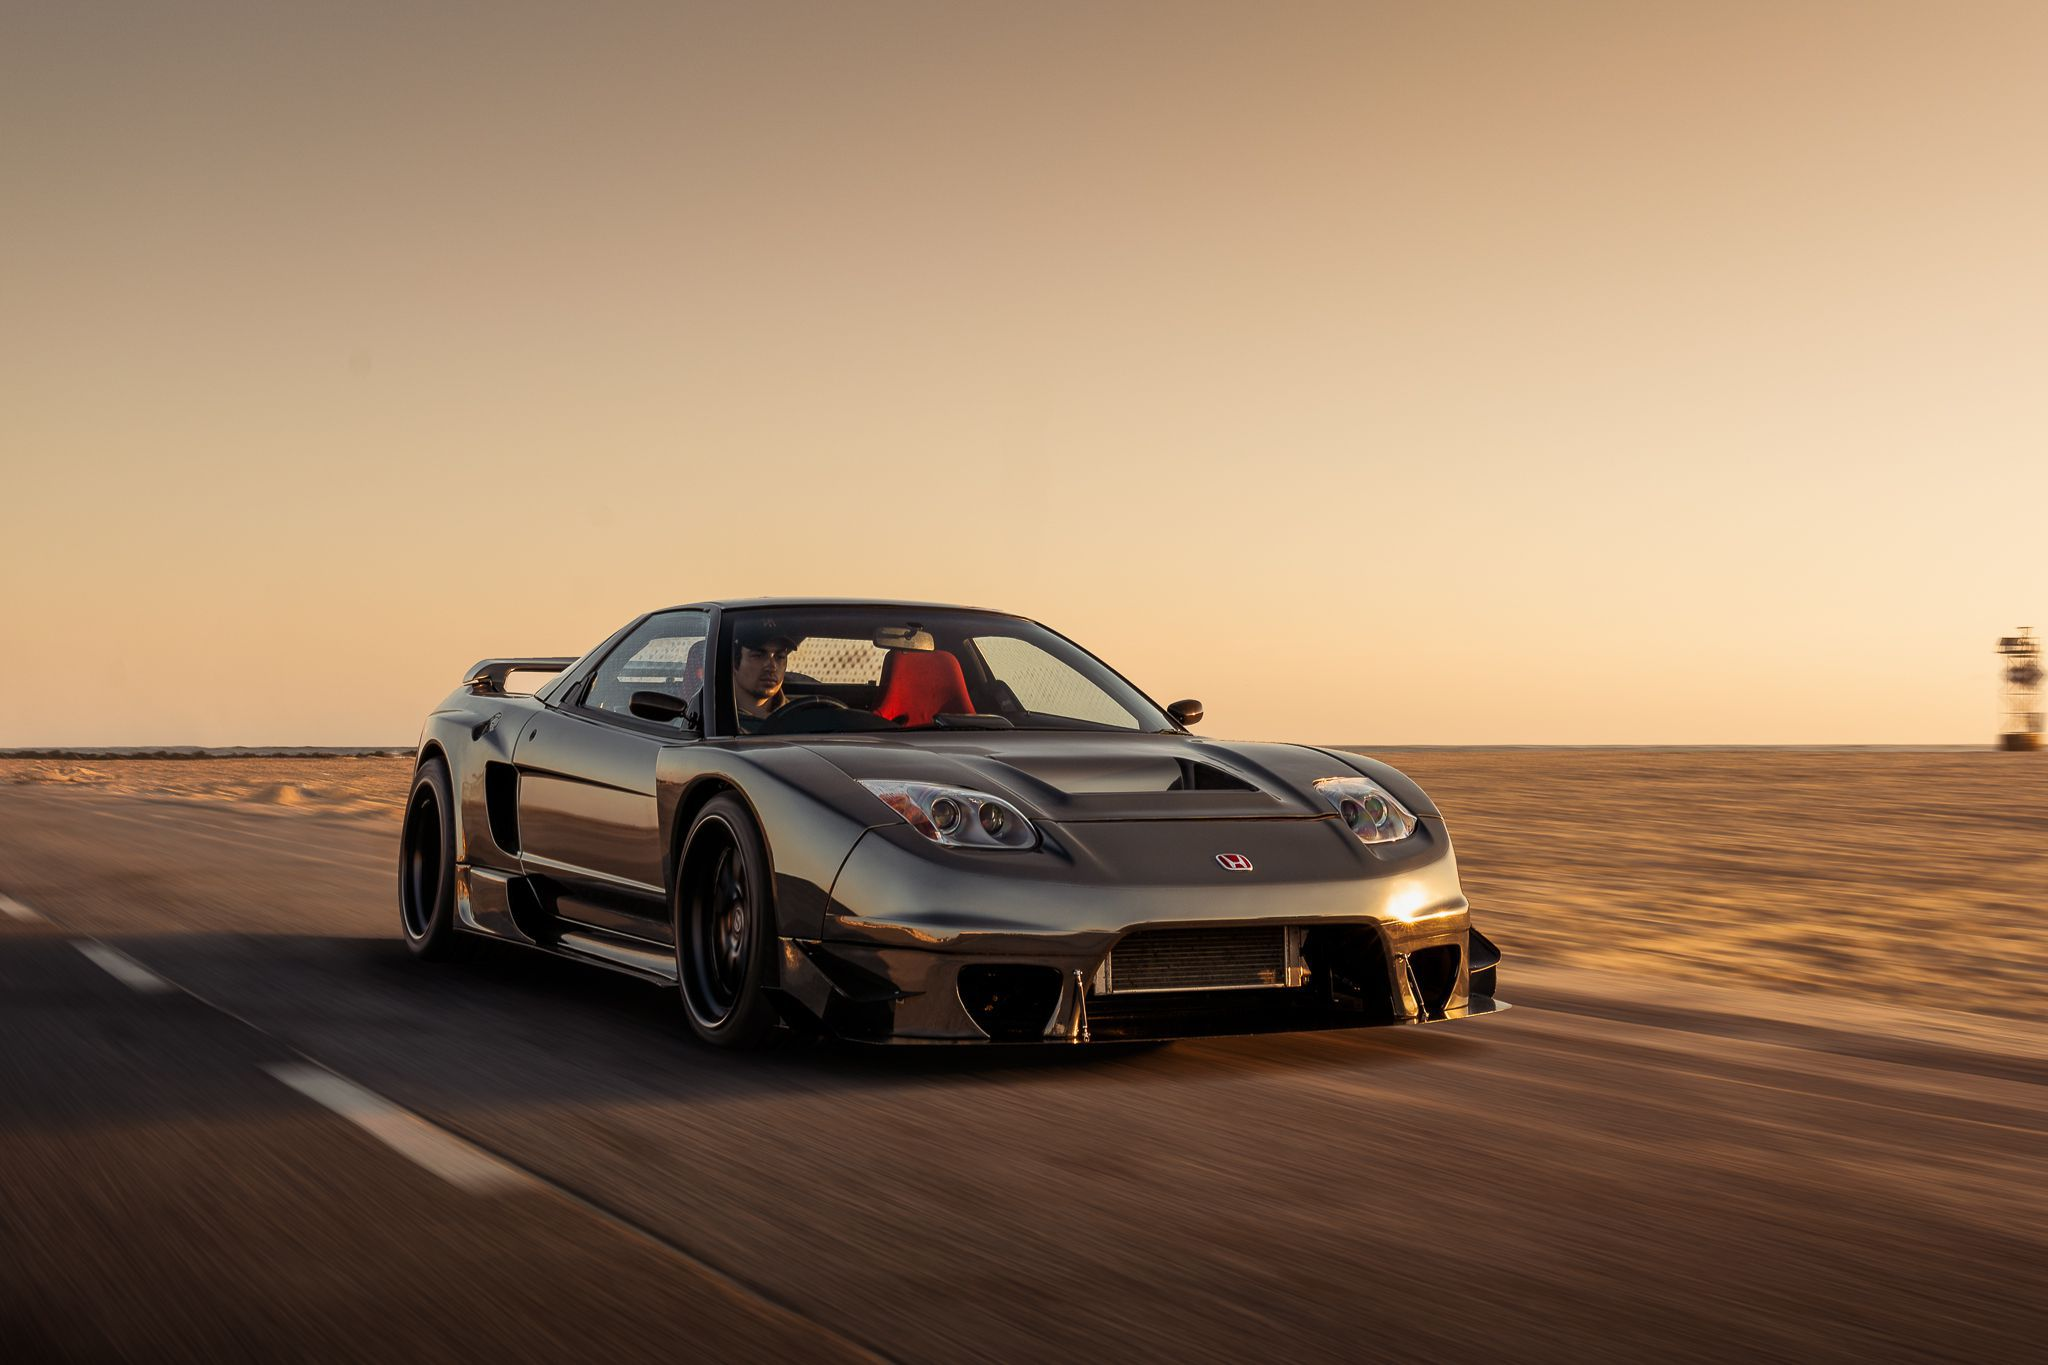 grey NSX in motion at sunset, wallpapers